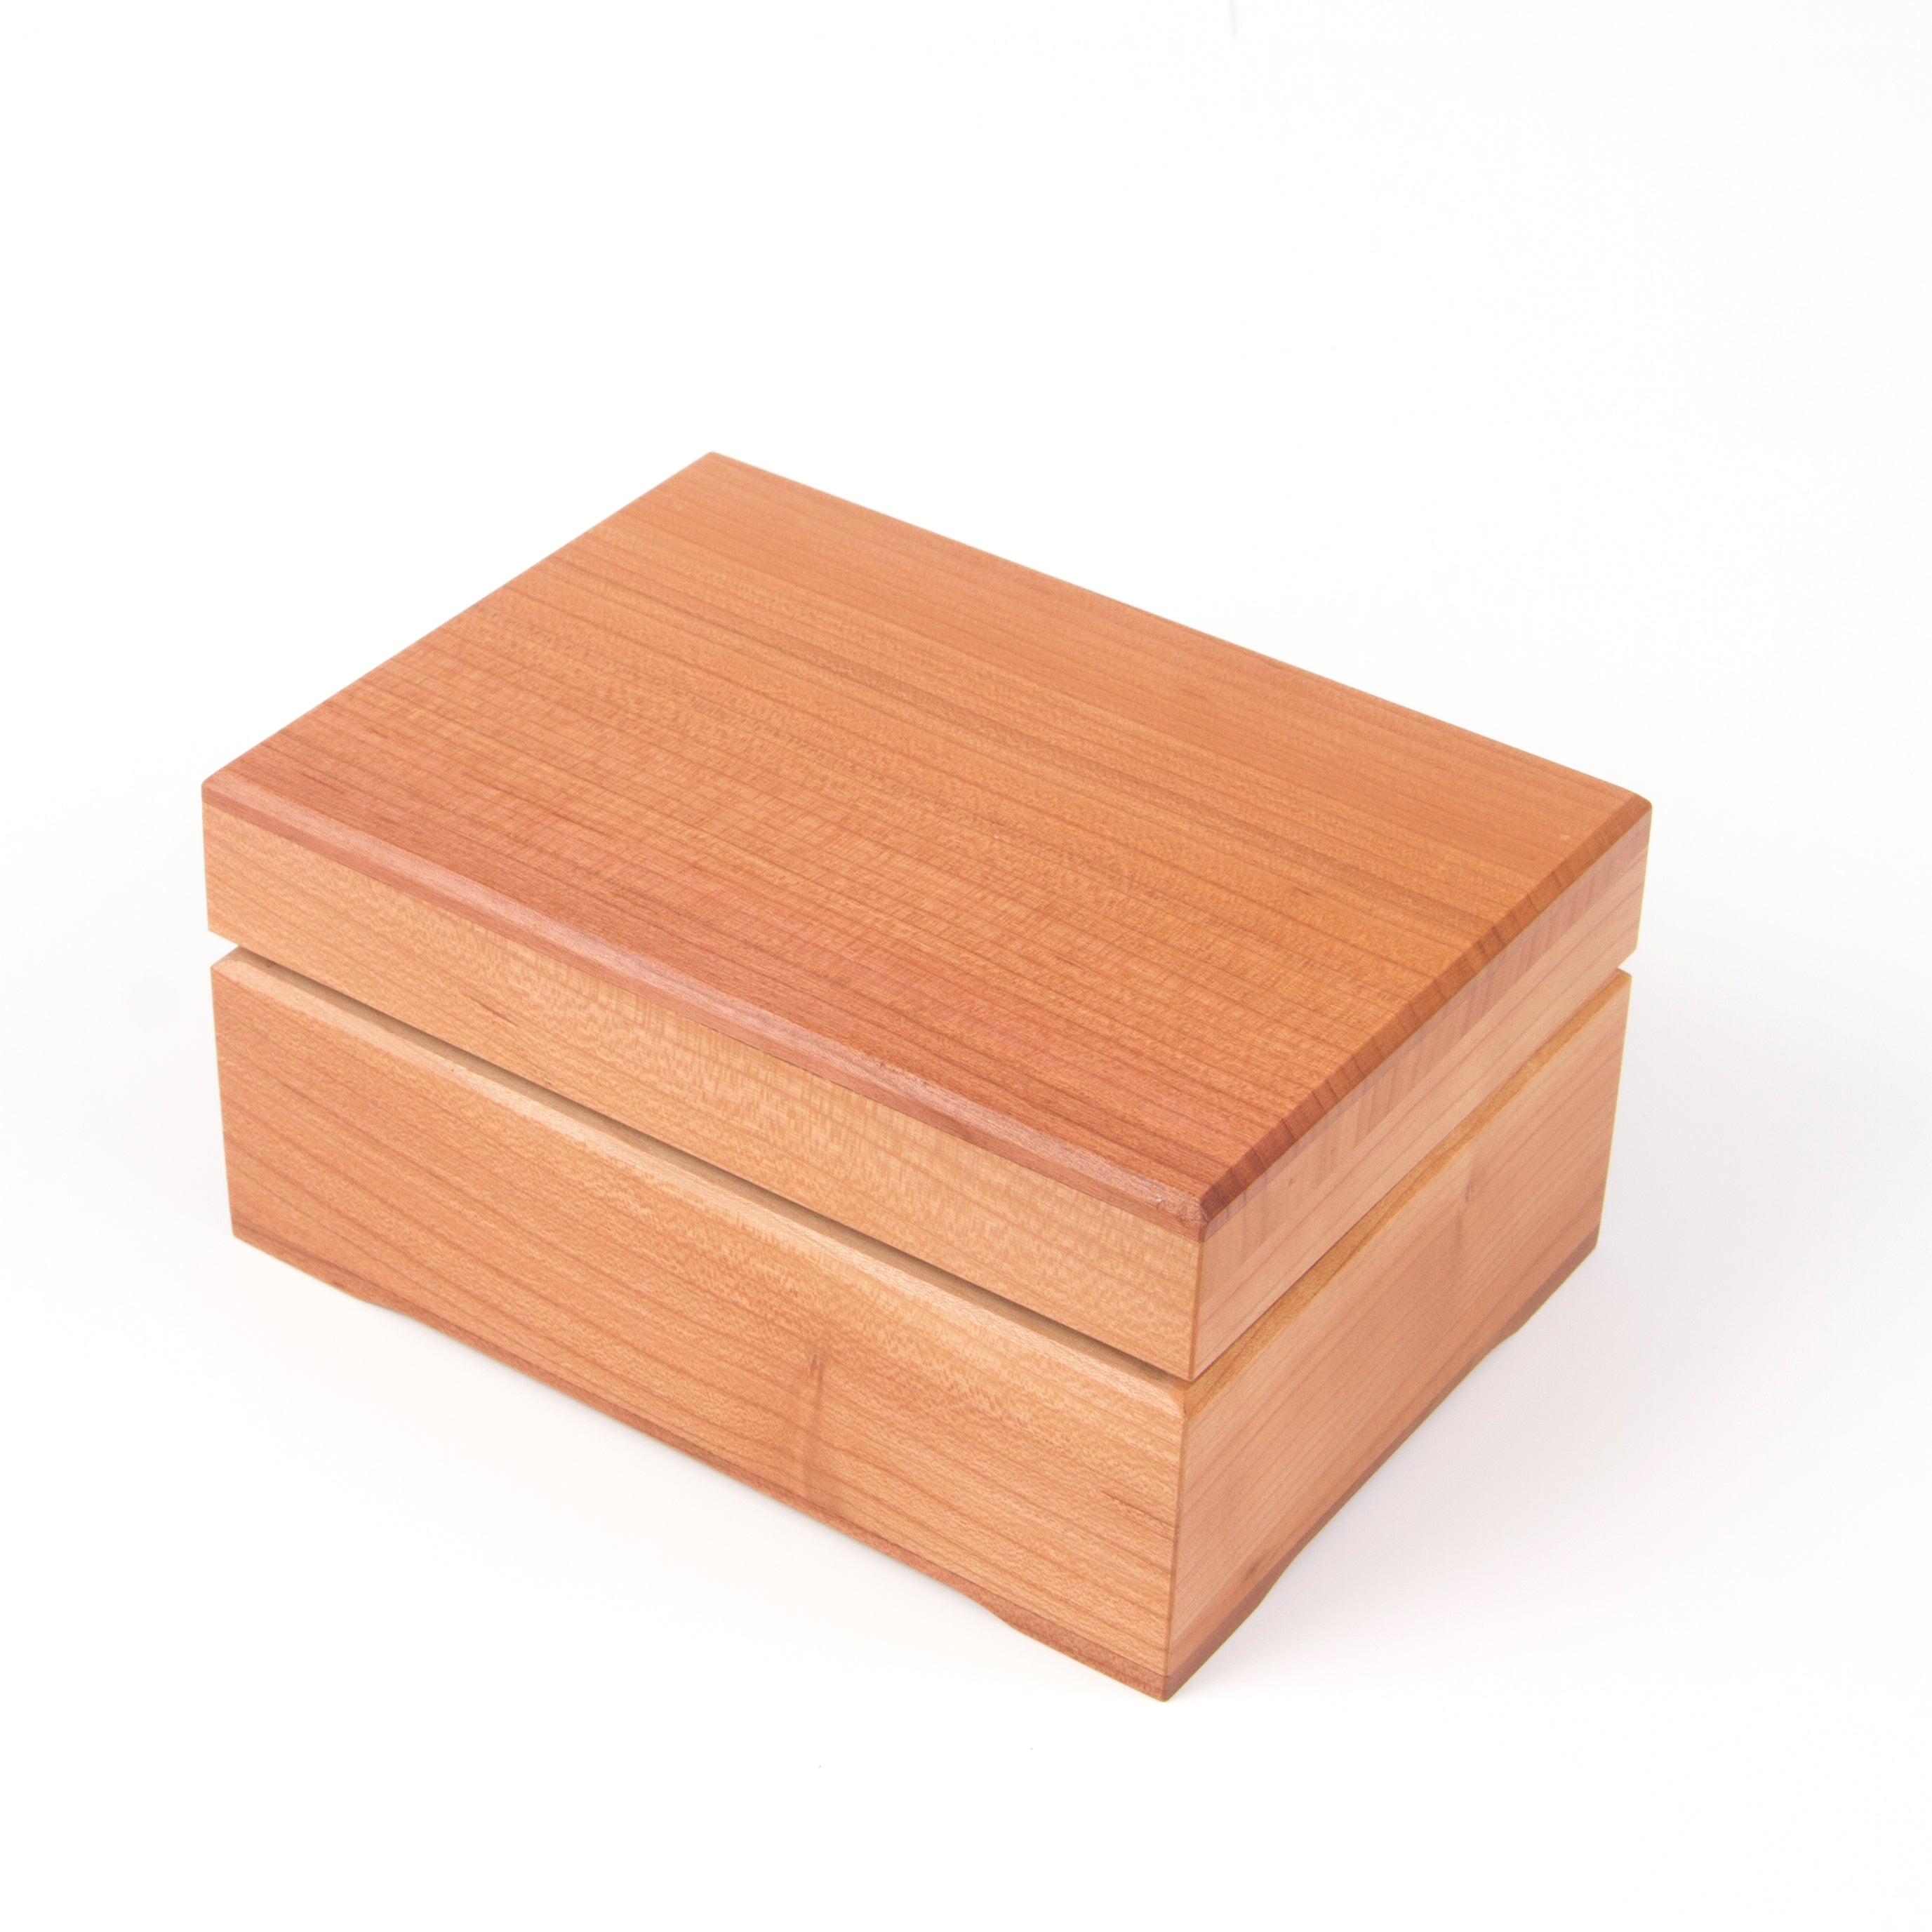 icky humidor 2 tin in natural stain closed box